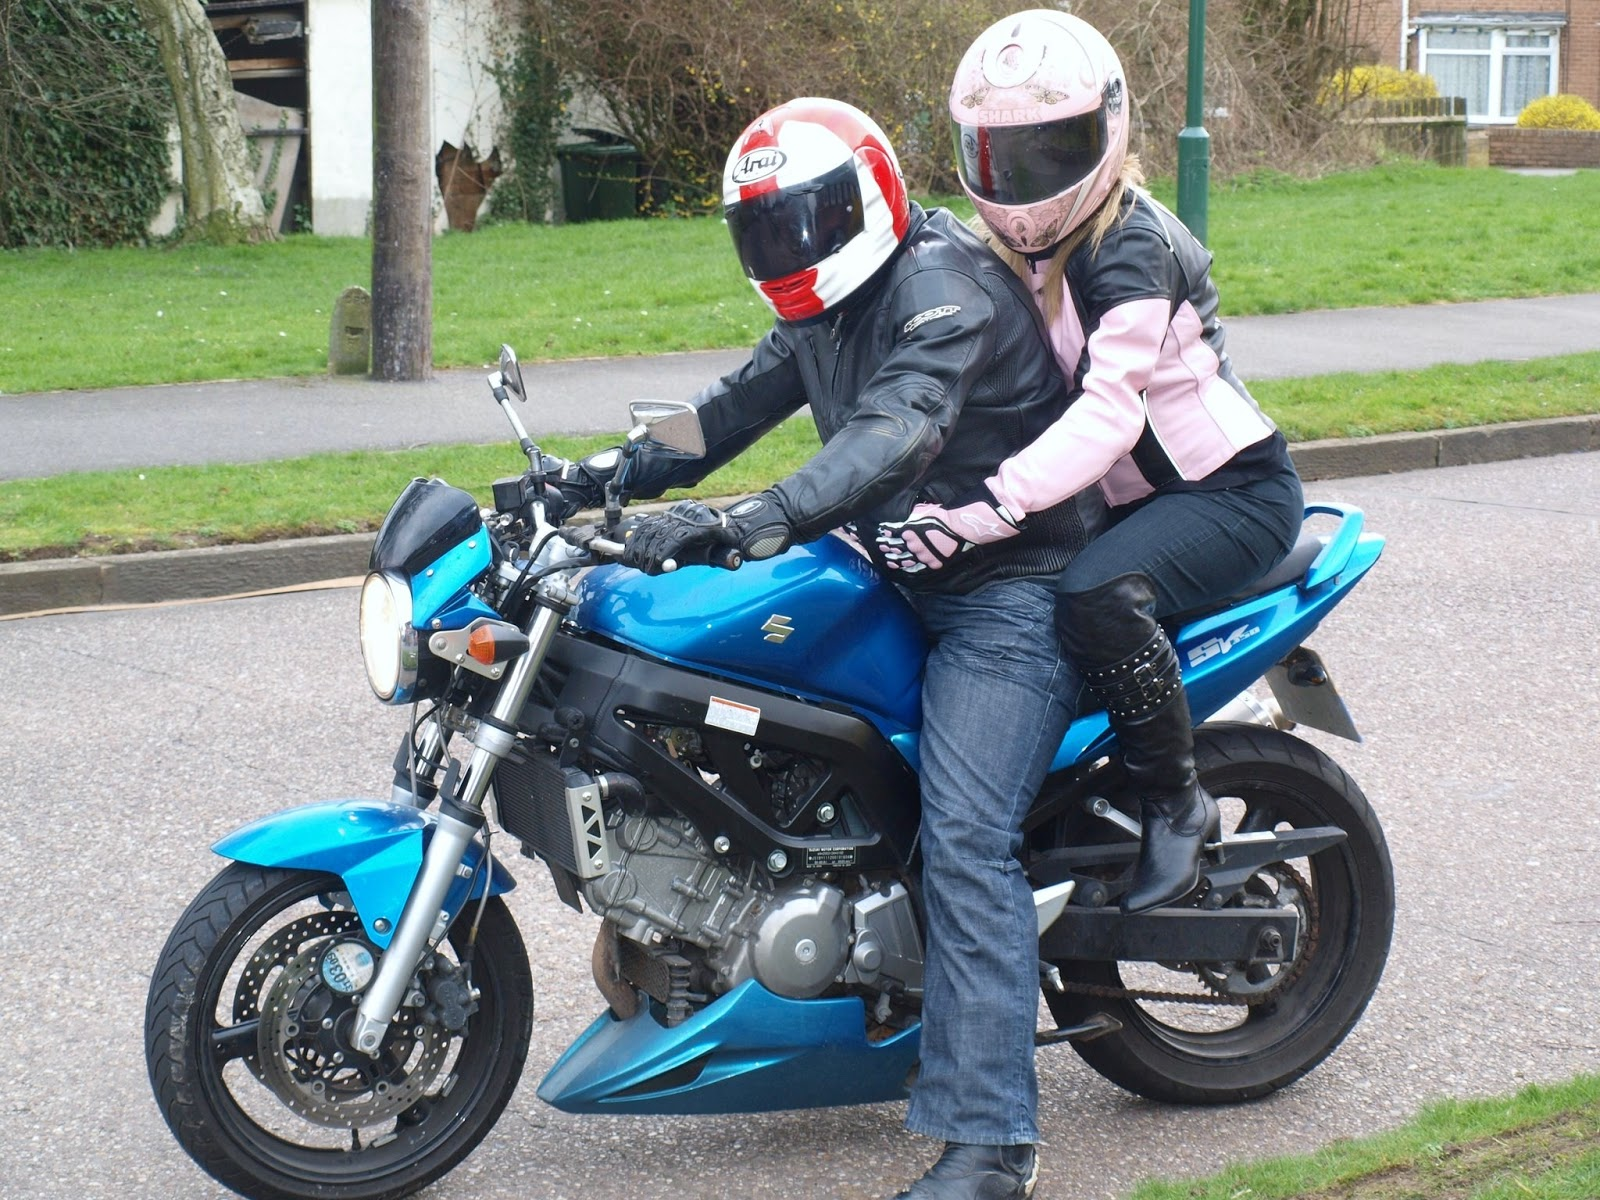 motorcycle-datingcouk - Biker Dating